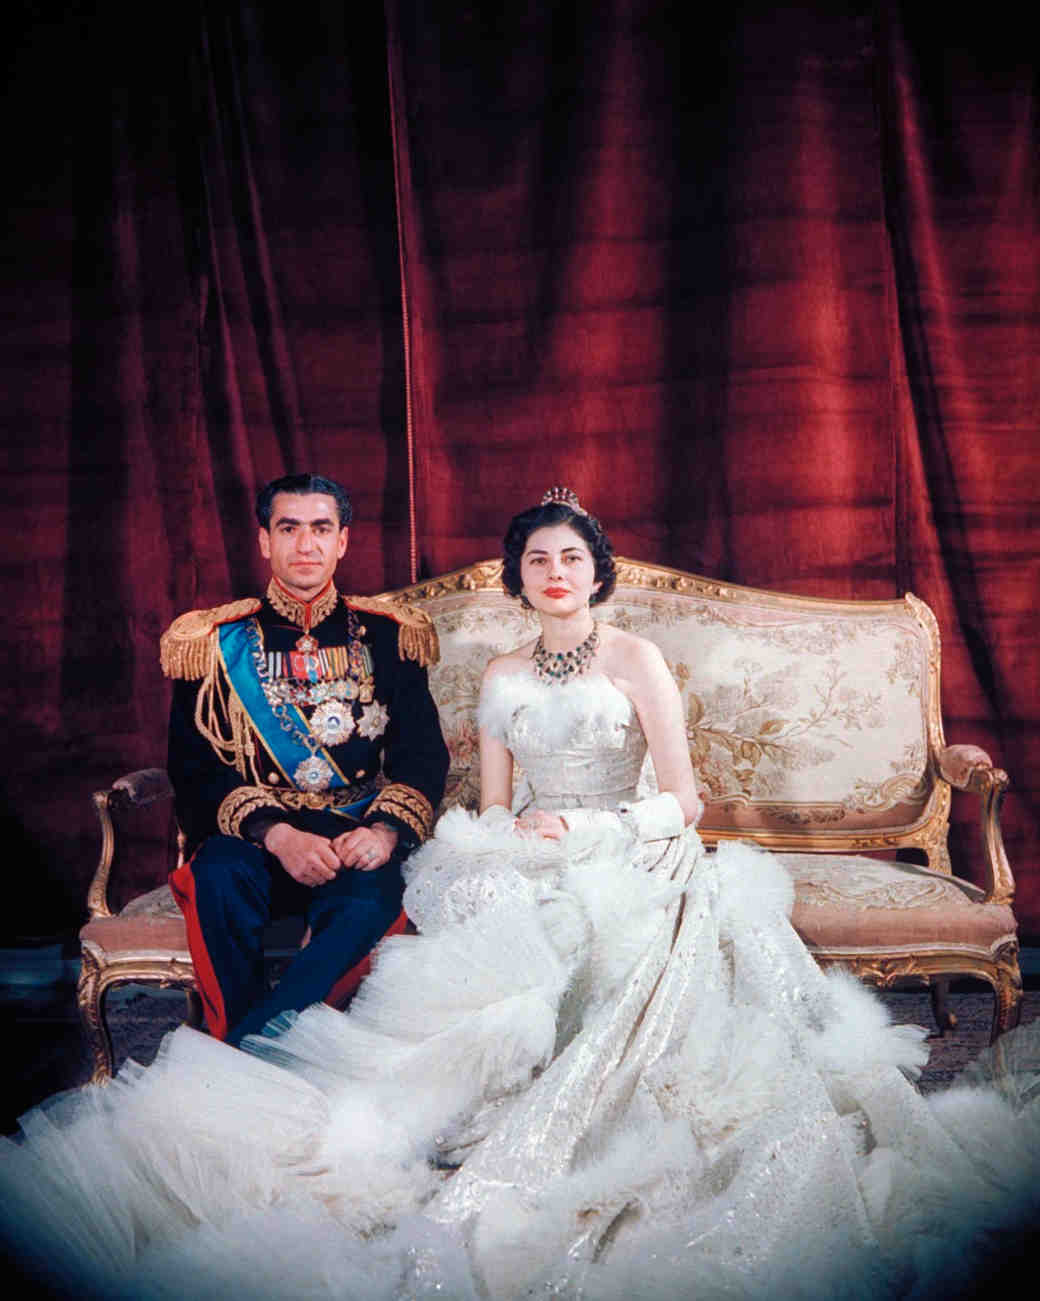 royal-wedding-dress-queen-soraya-iran-50595286-1115.jpg